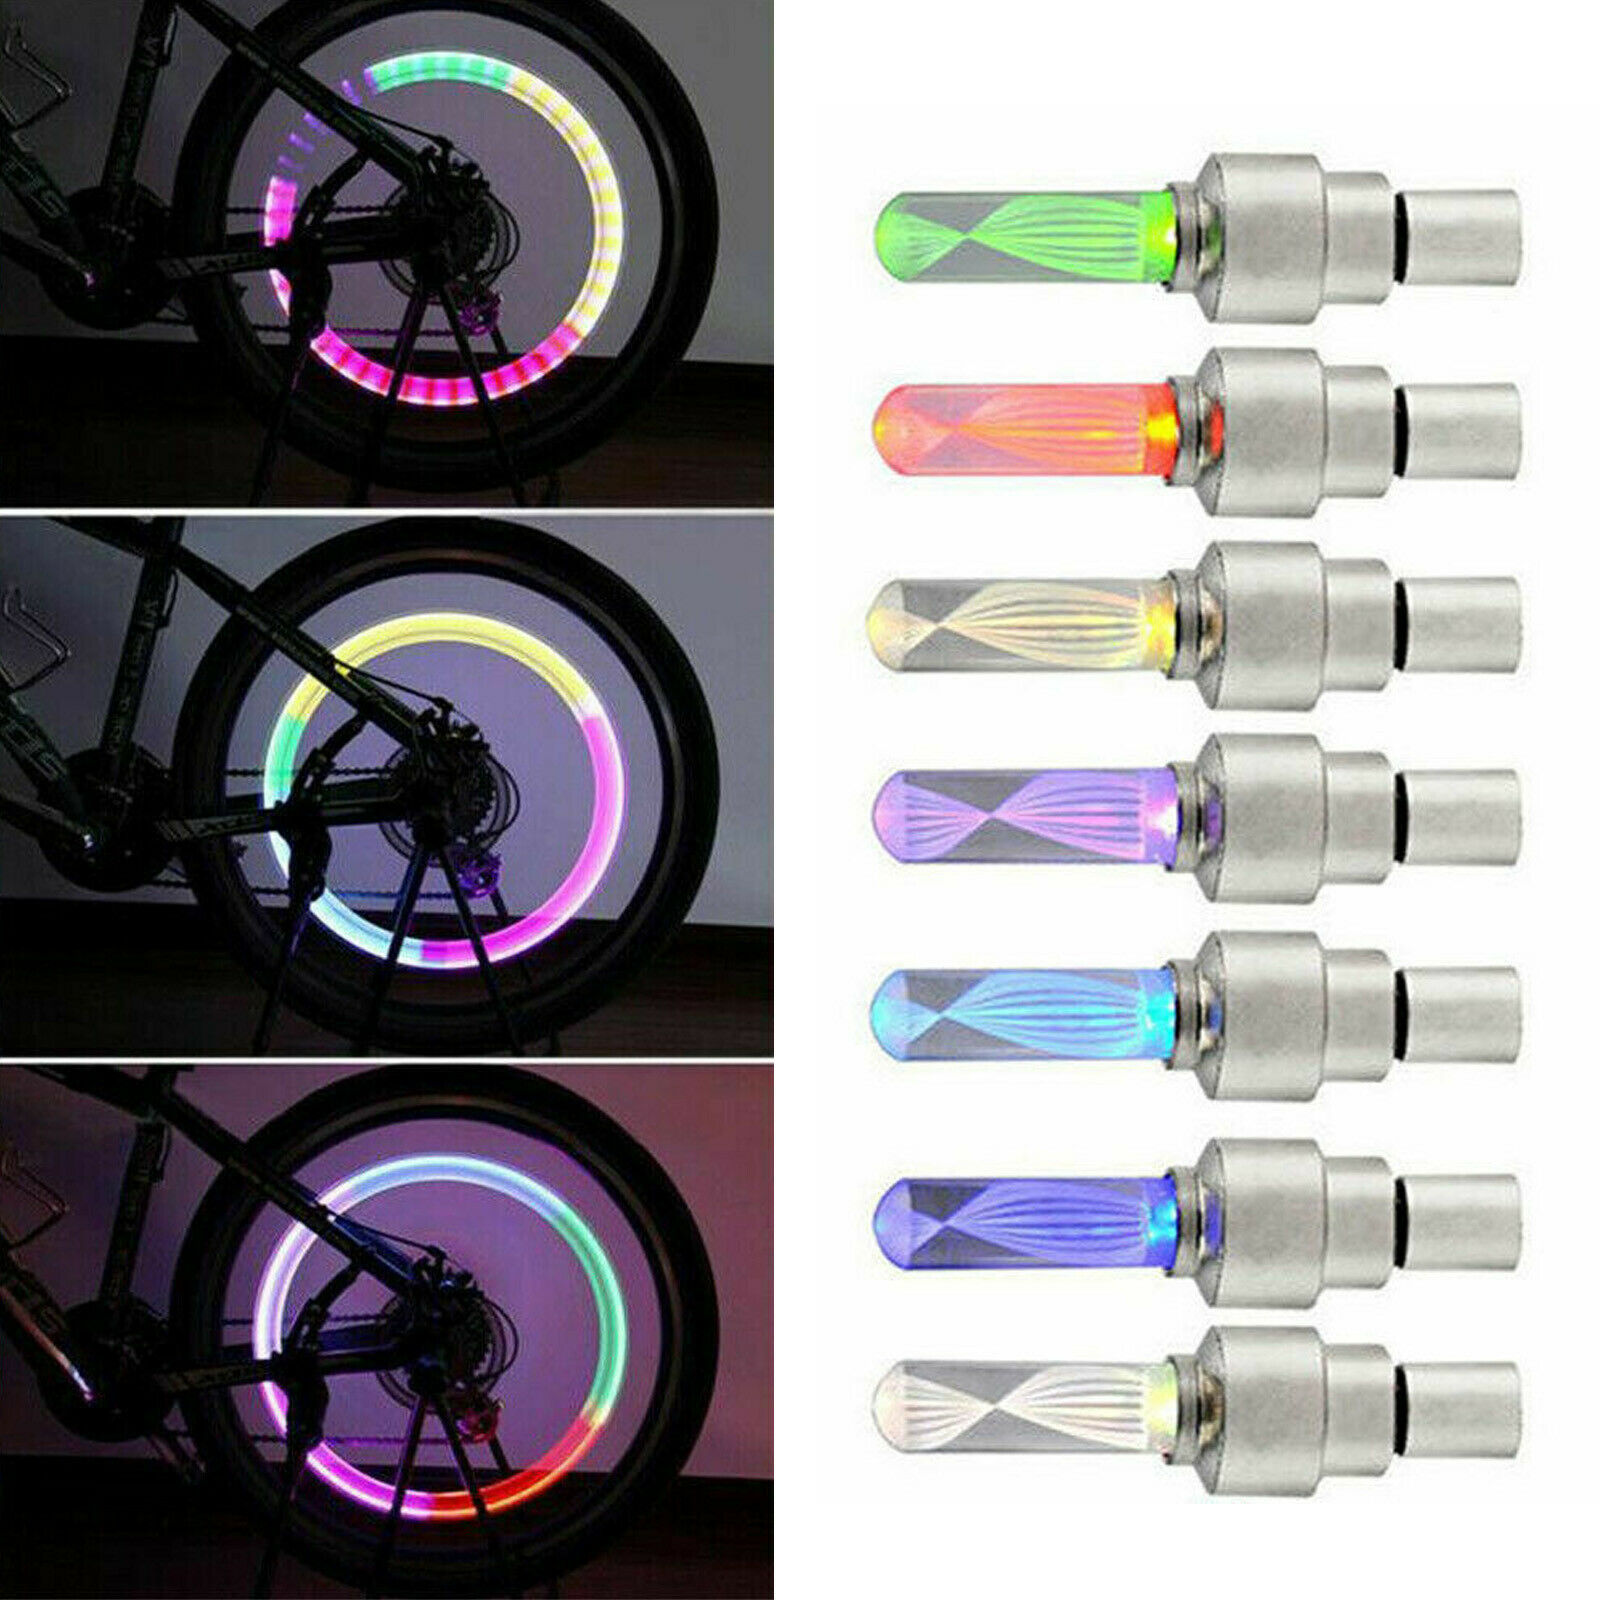 1Pcs 5 Colors RGB LED Bike Valve Cap Light Flash Tyre Tire Wheel Stem Rim Neon Lights Lamp For Bicycle Motorcycle Night Cycling